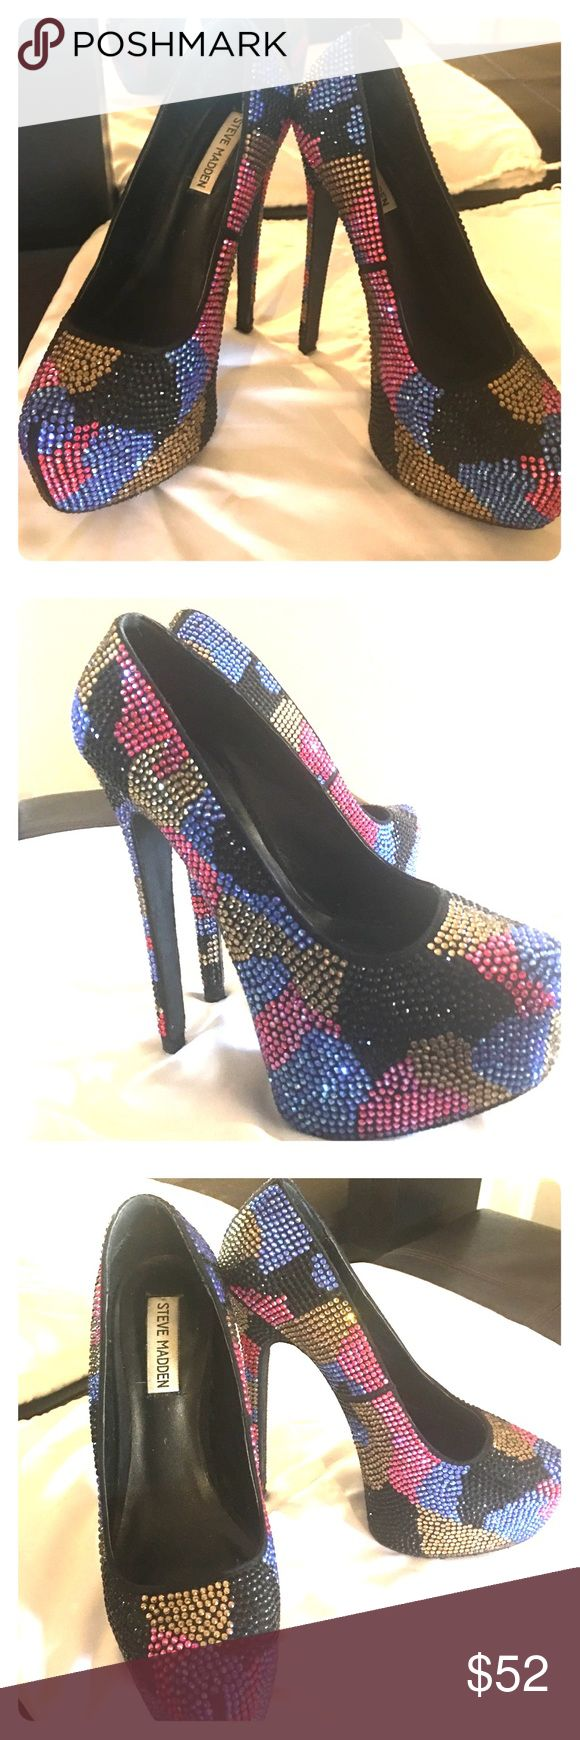 Steve Madden Dyvinal Crystal Studded Platform Heel Steve Madden Dyvinal Rhinestone Crystal Studded Platform Stilettos! Size 7. These extremely high stilettos will have you sticking out in the crowd for sure! With an exaggerated platform and camouflage style print, you'll be the hit of the party 🎉 Multicolored Hot pink, Black, Yellow & Blue Crystals. There is only a few crystals missing on the very bottom of the right heel (picture included) otherwise they are in excellent condition! Will…